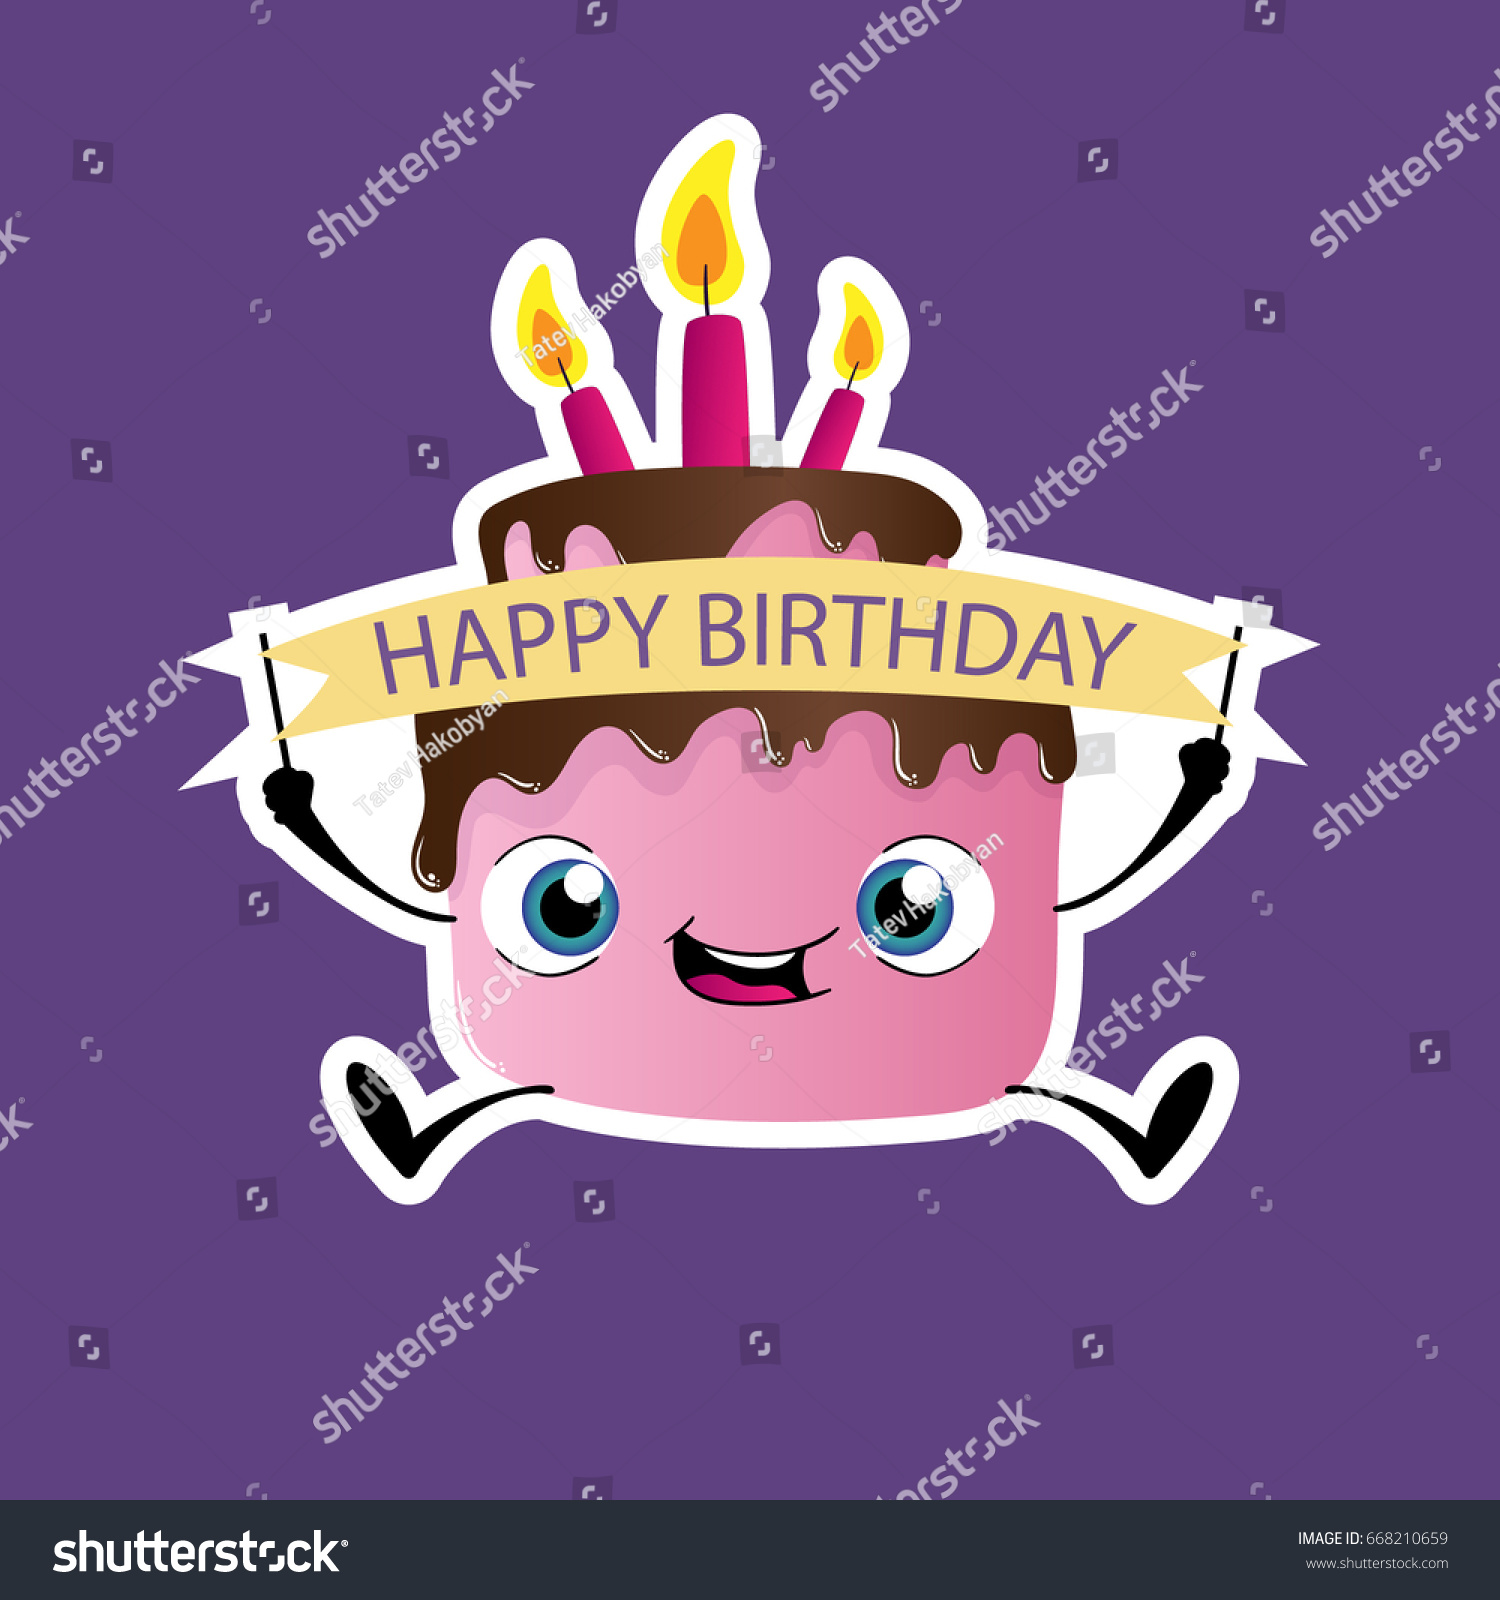 Superb Happy Birthday Cake Clipart Stock Vector Royalty Free 668210659 Funny Birthday Cards Online Fluifree Goldxyz